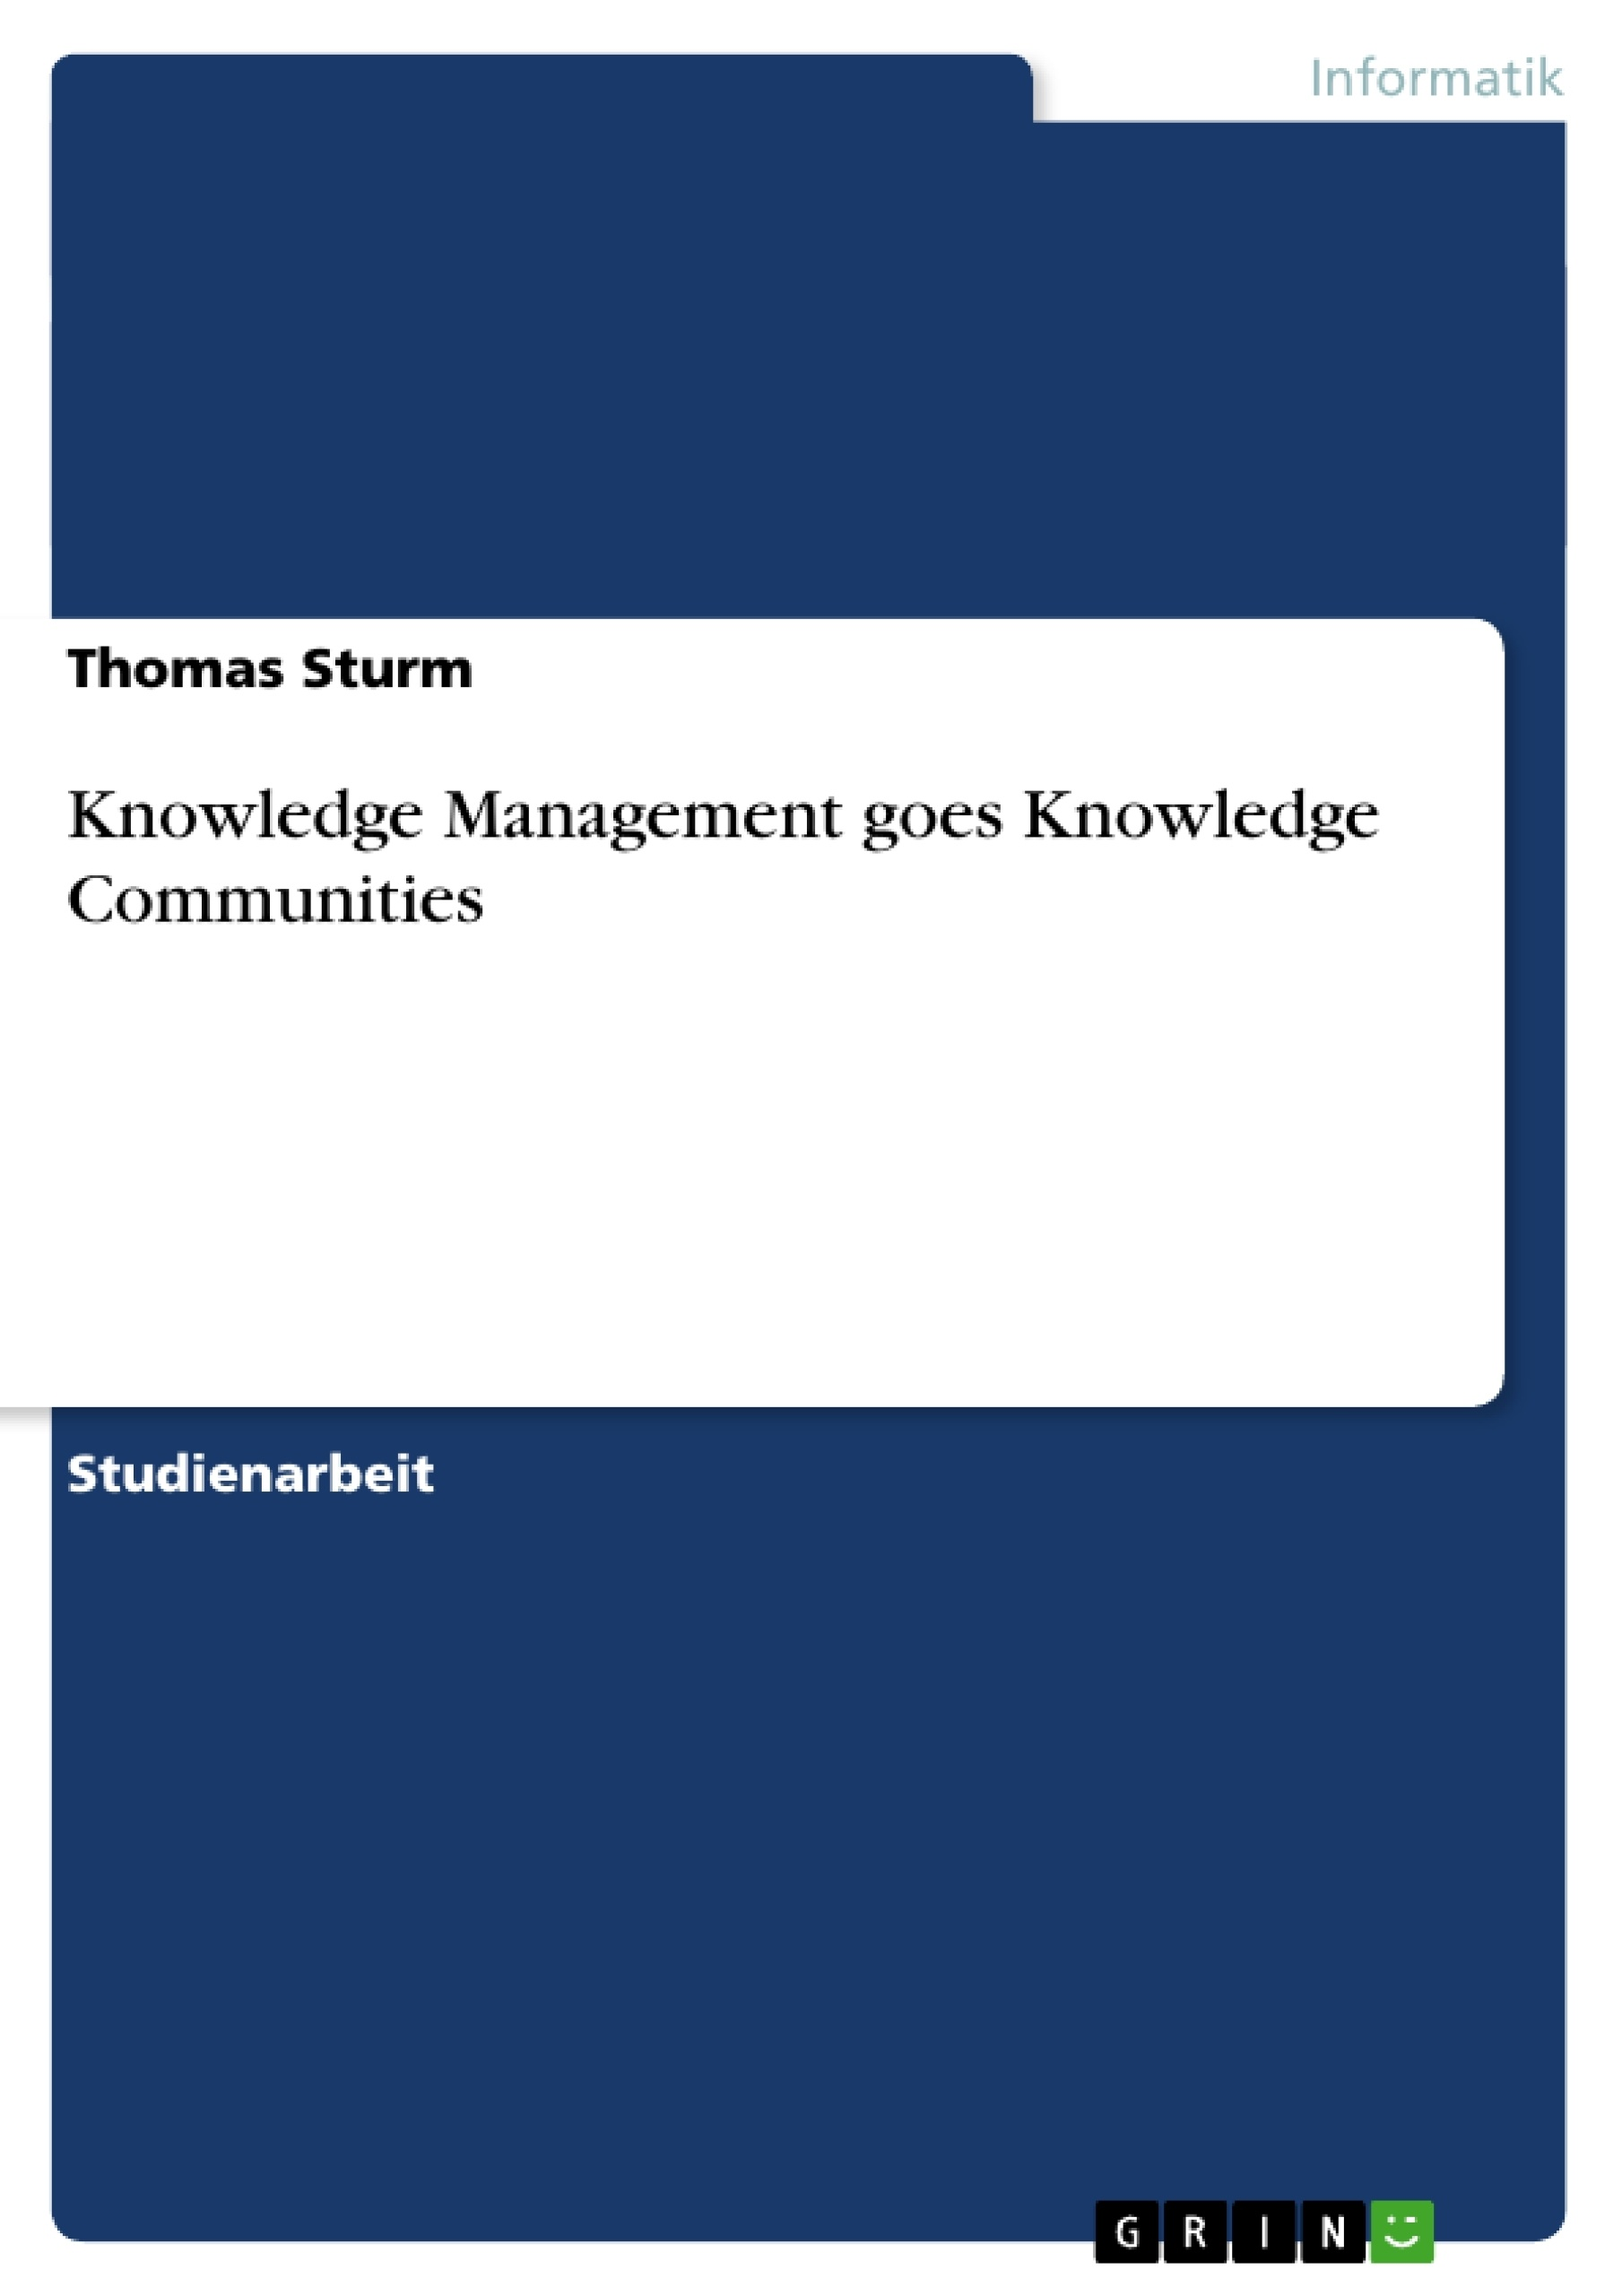 Titel: Knowledge Management goes Knowledge Communities